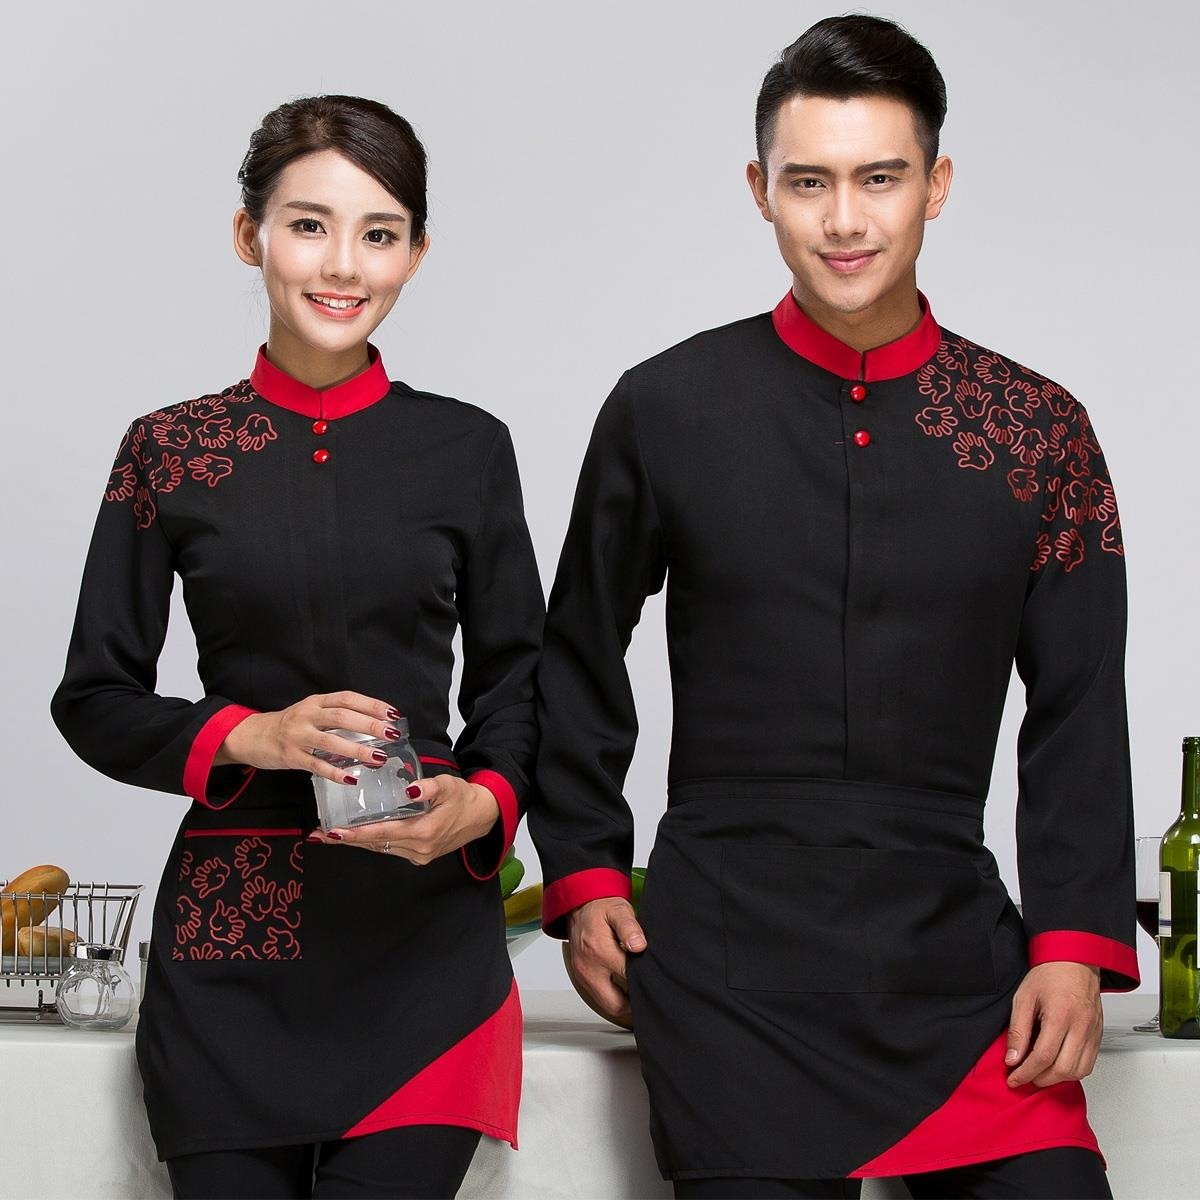 Work Wear & Uniforms Novelty & Special Use Energetic Dragon Chinese Restaurant Chef Jacket Short-sleeved Chef Service Uniform Hotel Working Wear Kitchen Chef Top Jackets 89